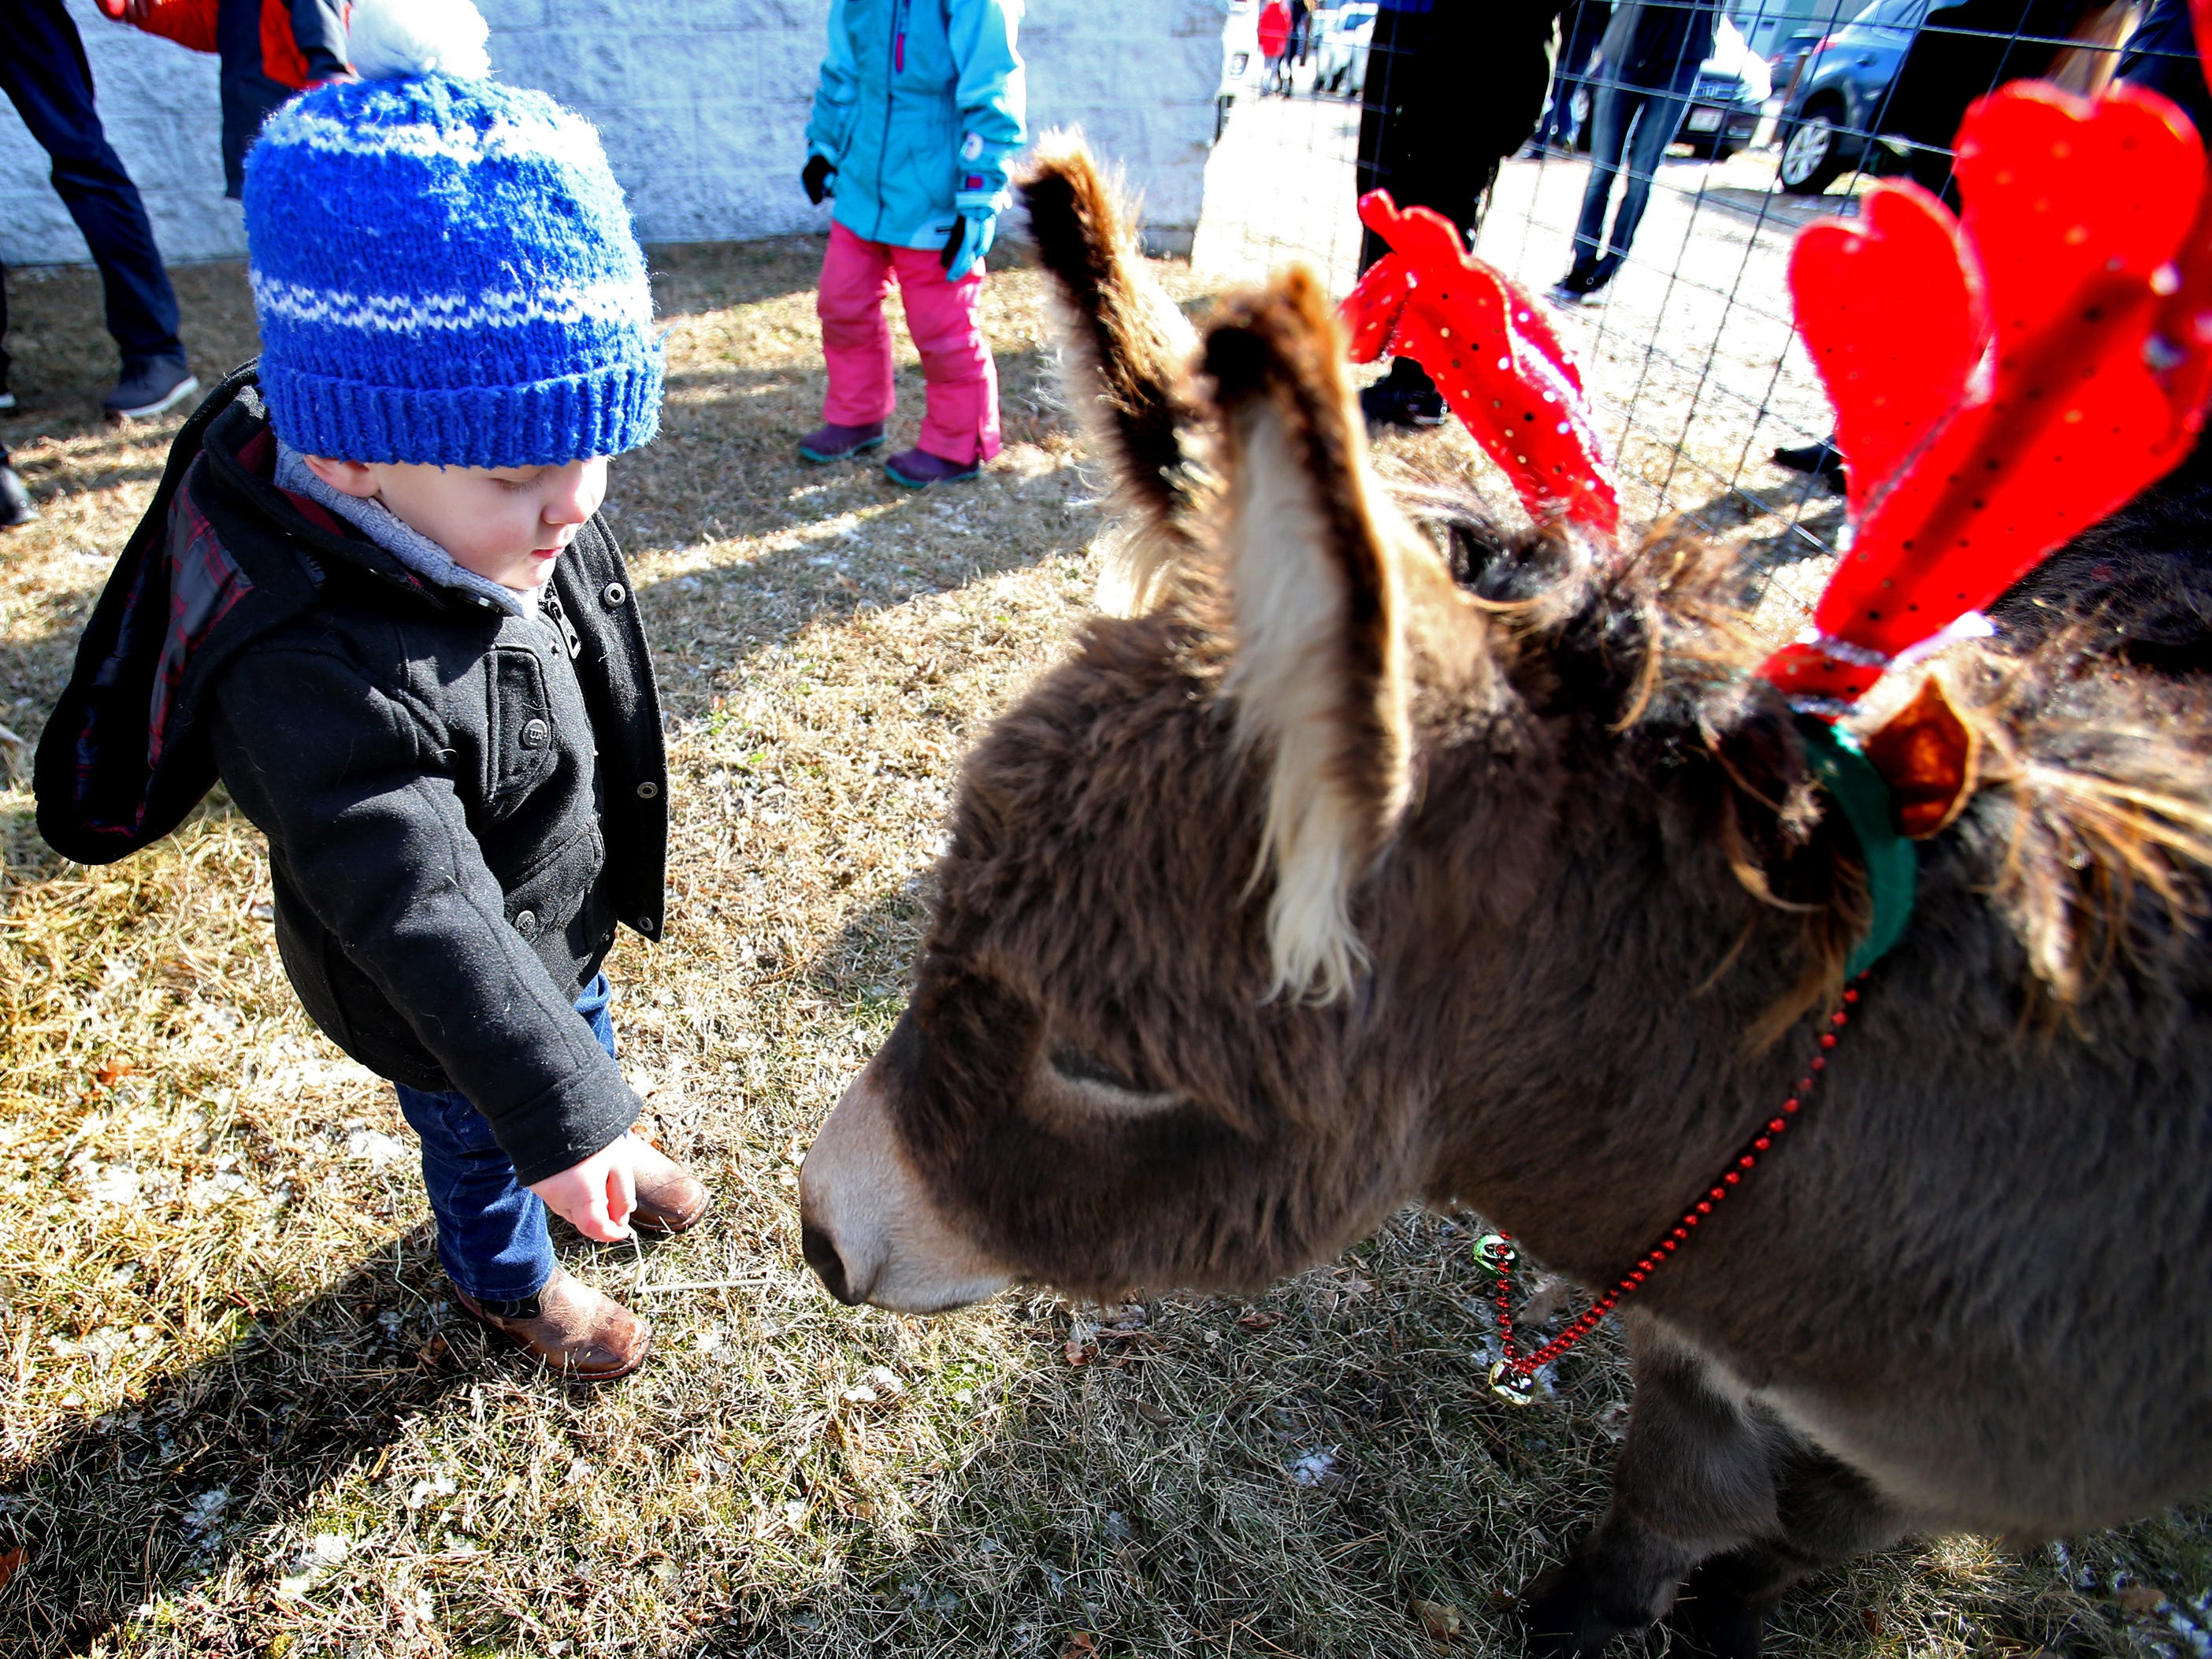 Adam Prochniak, 18 months, tries to get a donkey to snack on some hay during Christmas in Wales on Dec. 8.